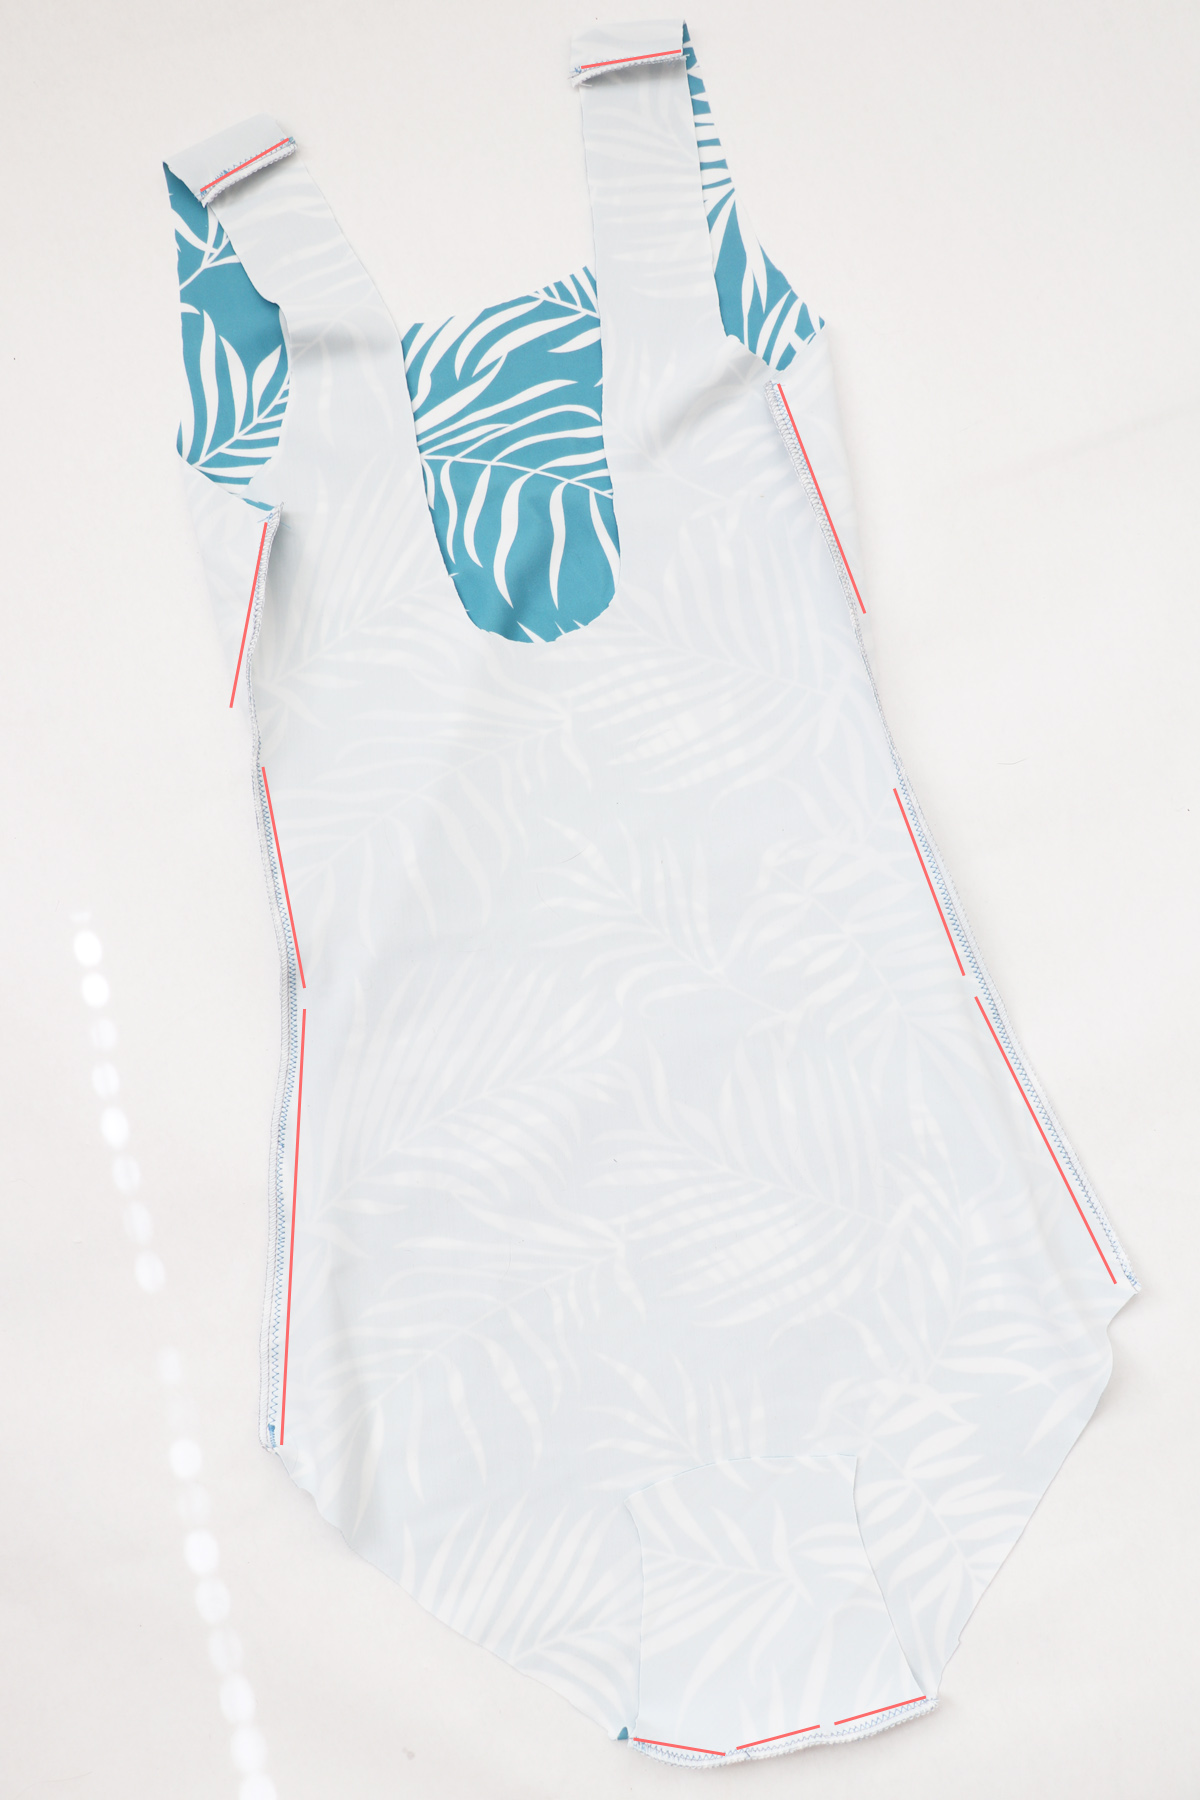 how to sew the View B one piece verison of the Cottsloe swimsuit by Megan Nielsen Patterns